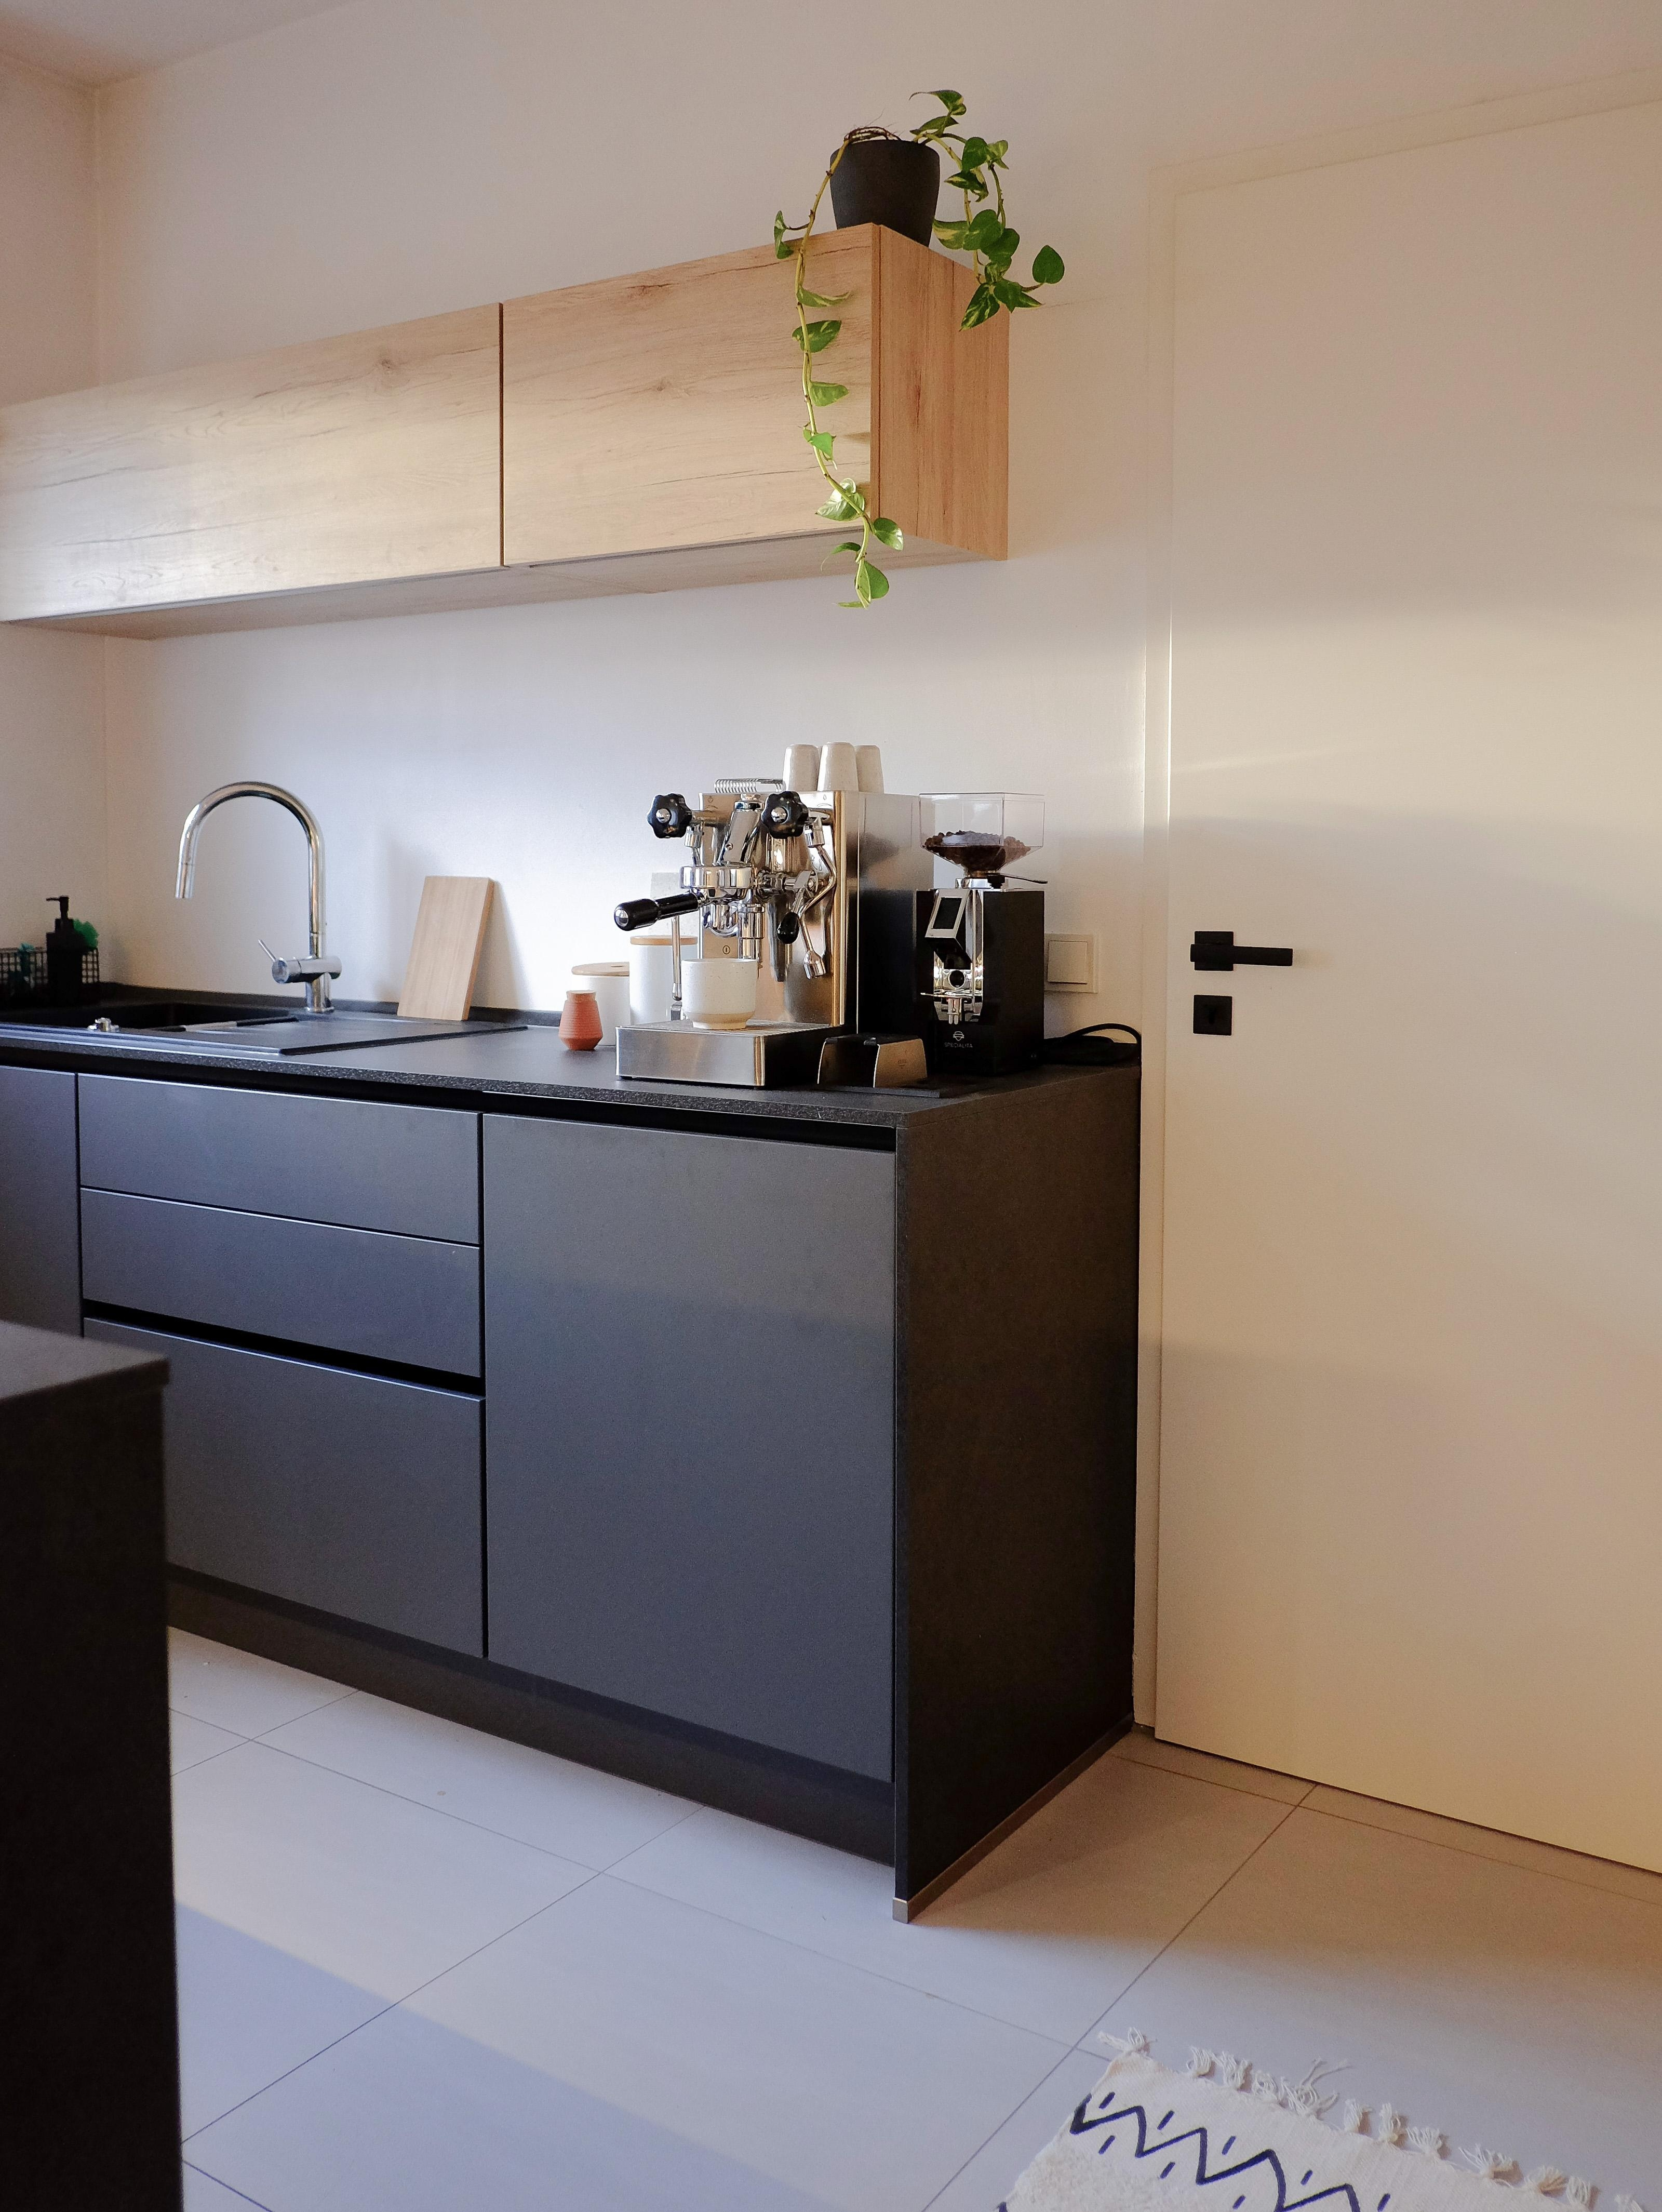 Drink coffee – it's chaos out there. #coffee #coffeelover #kitchen #kitcheninspo #darkkitchen #materialmix #minimalism